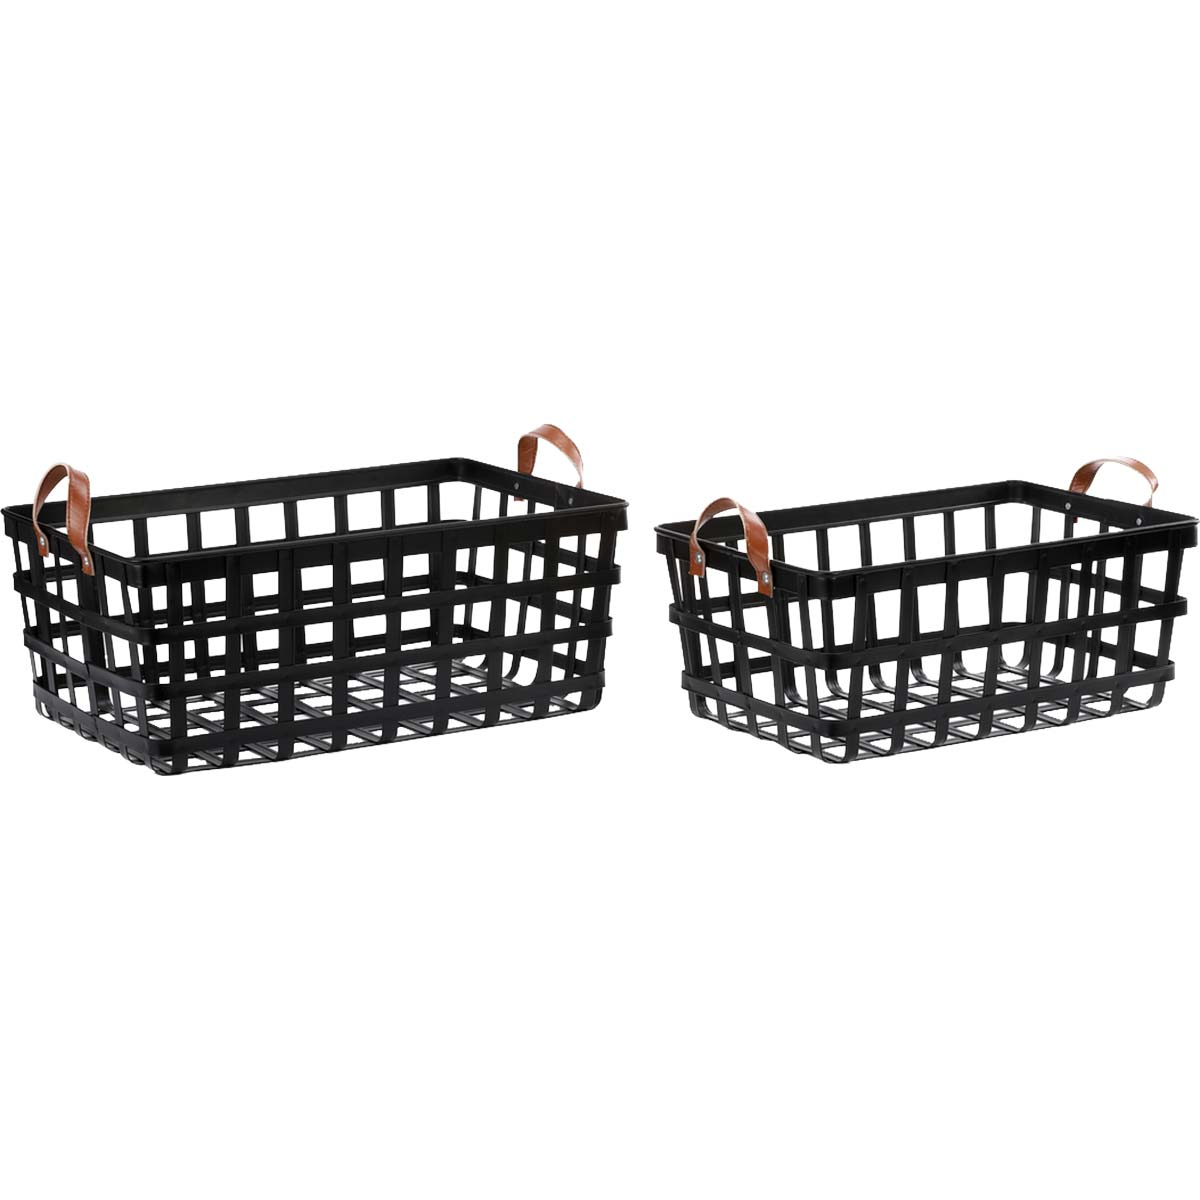 Iron Nesting Baskets - Set of 2